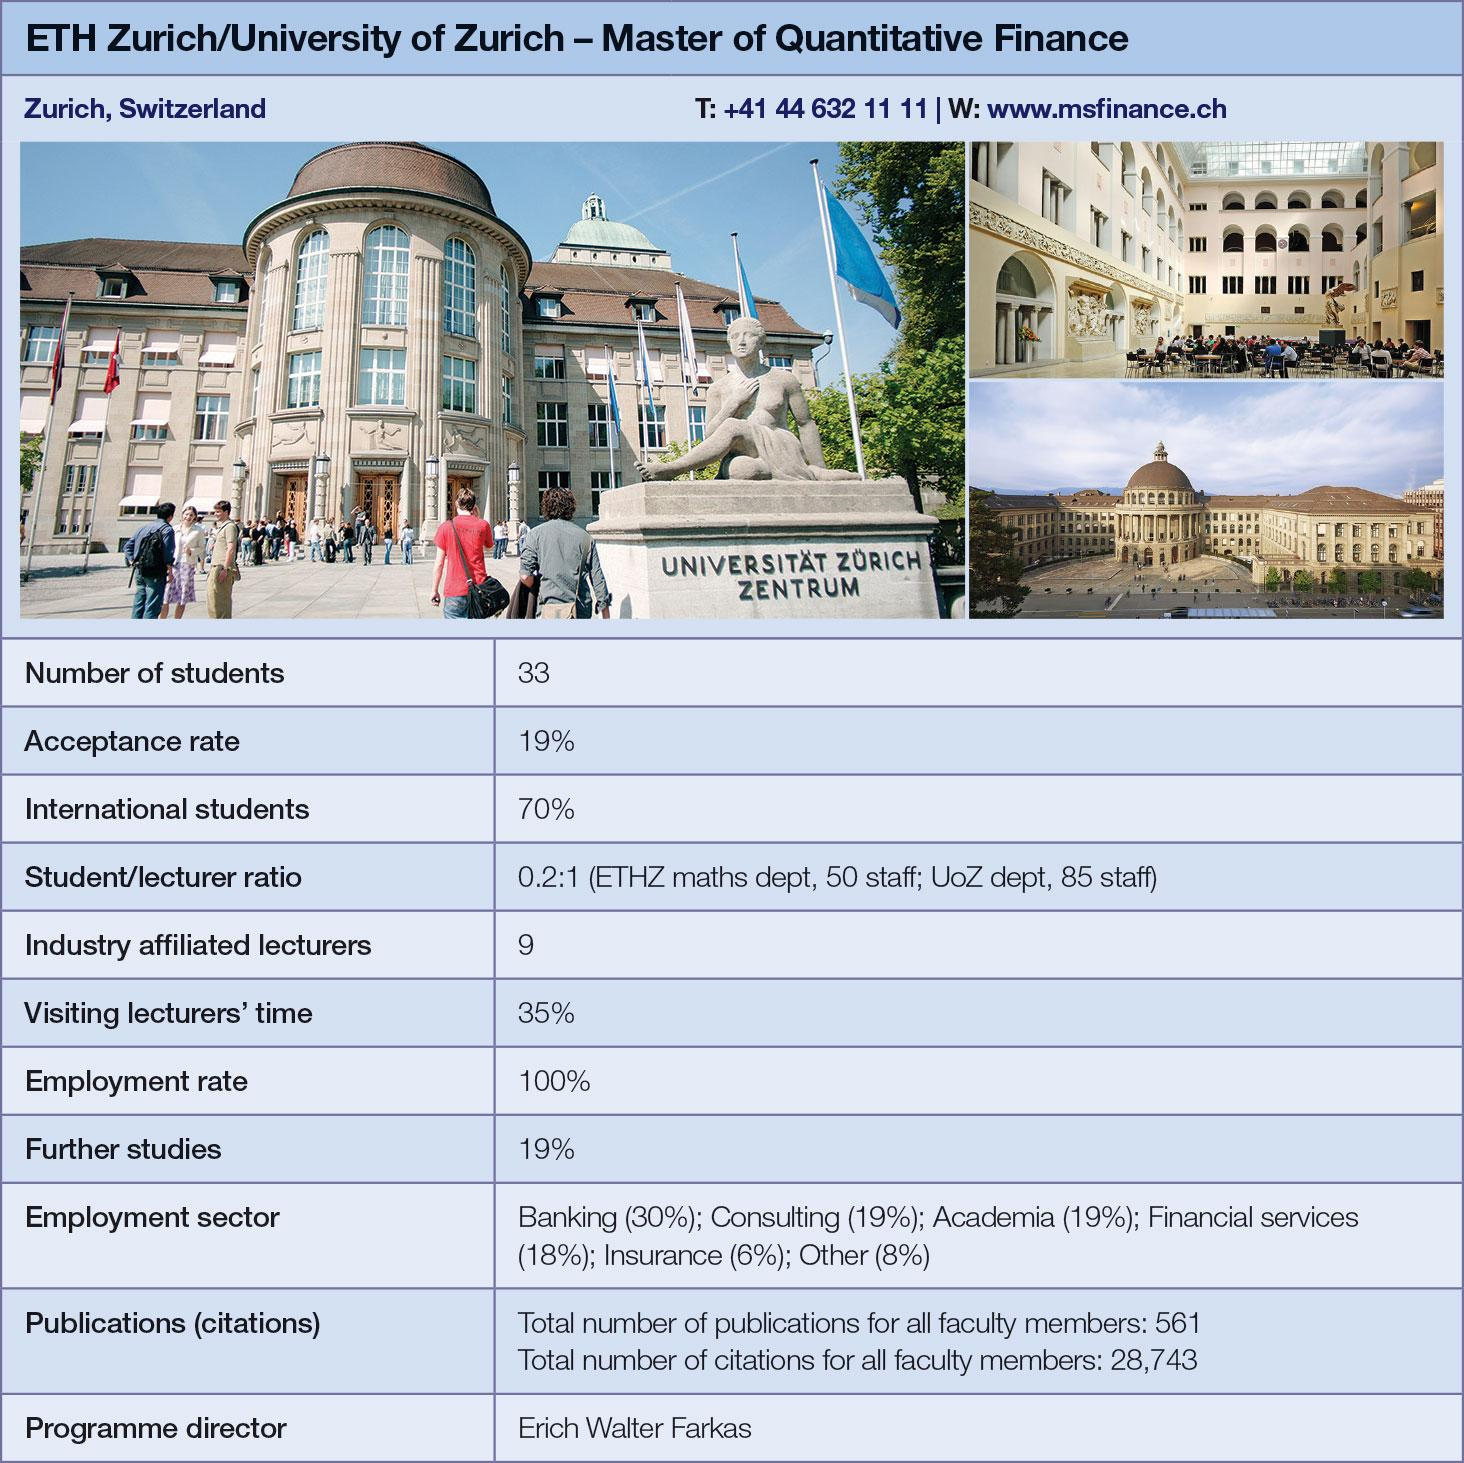 ETH Zurich/University of Zurich metrics